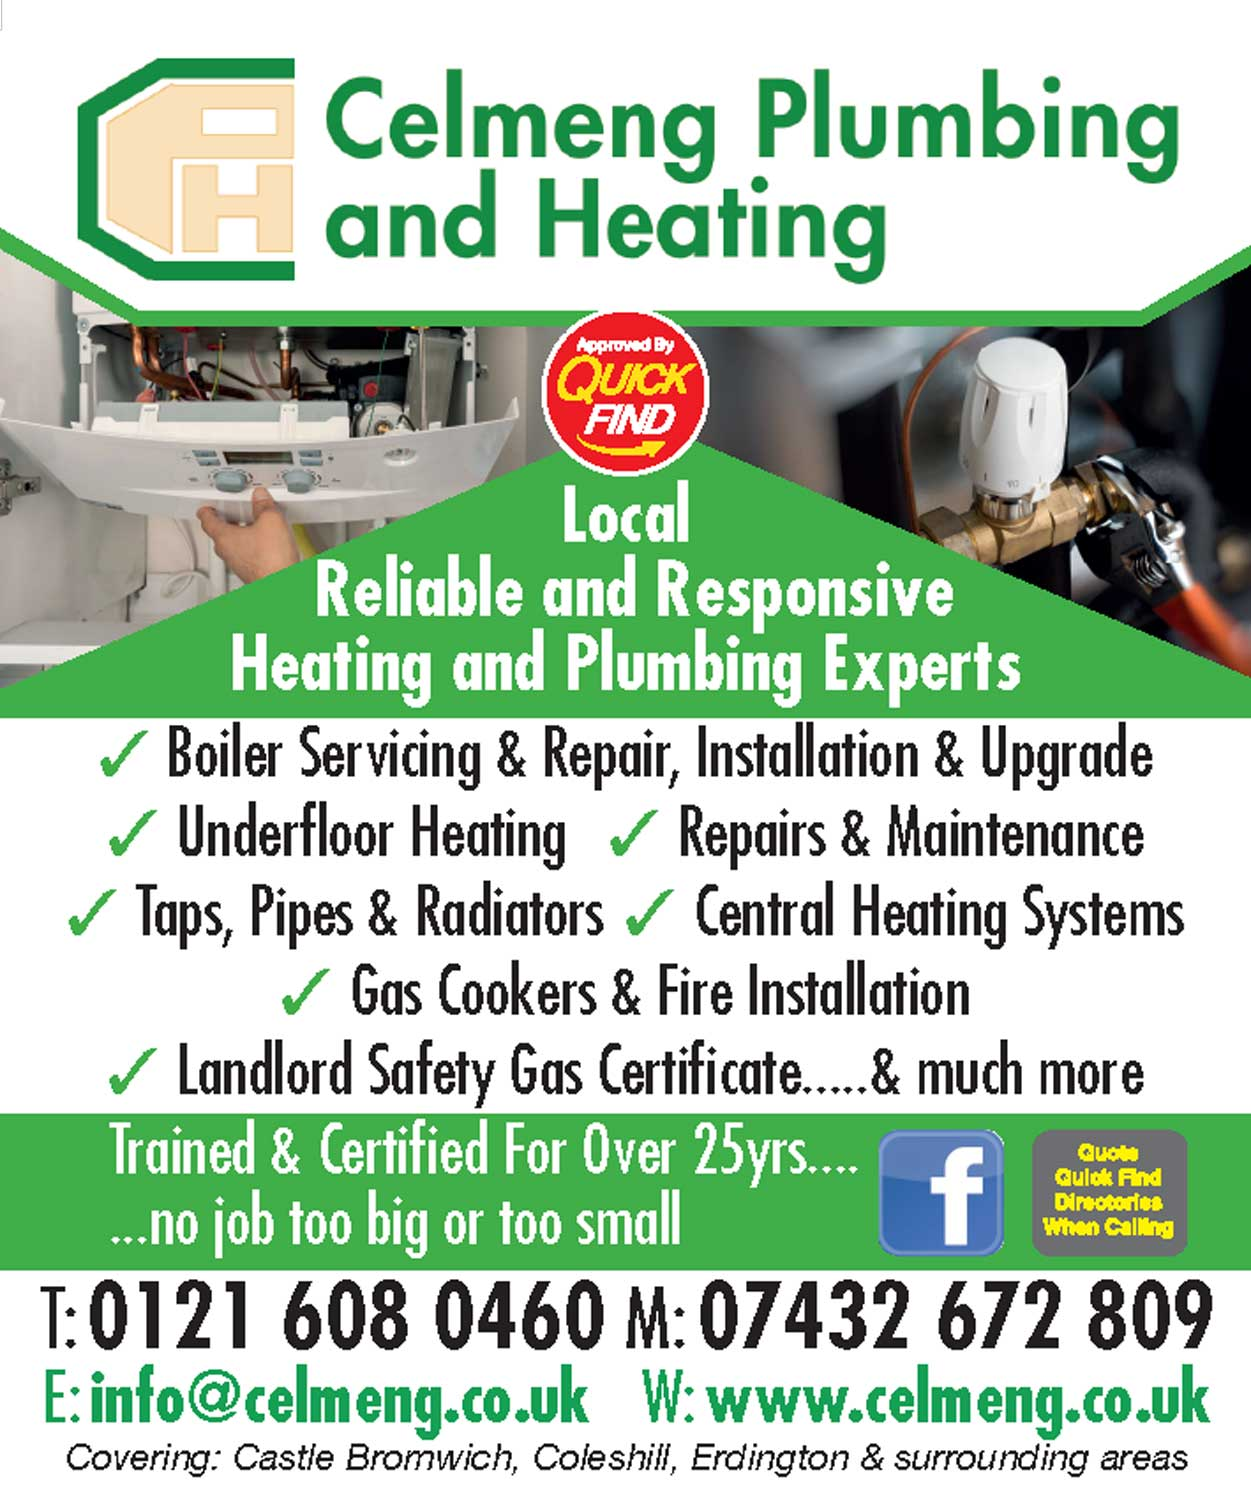 Celmeng Plumbing and Heating